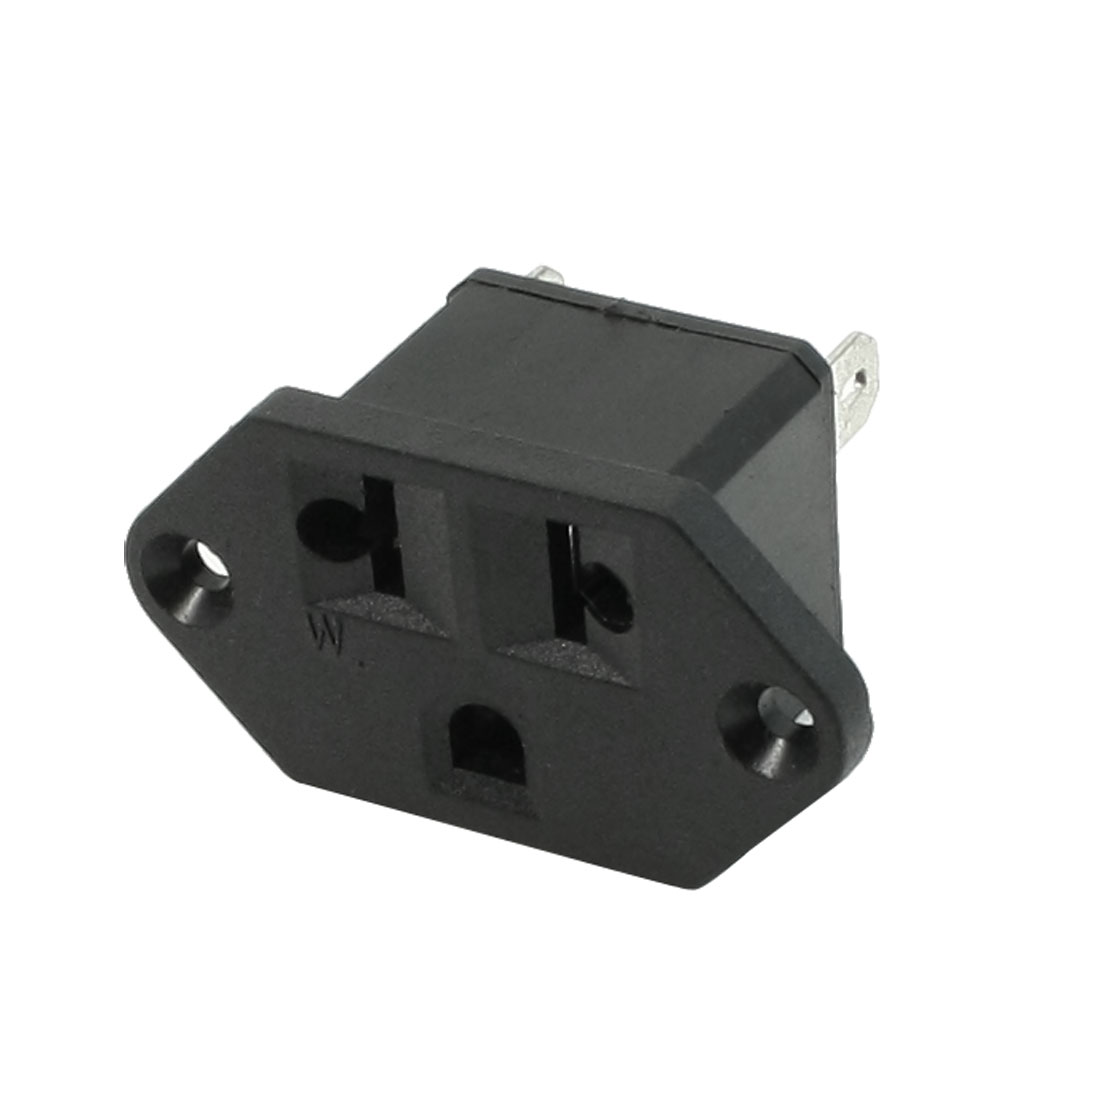 AC 125V/250V 6A Female Power Socket for 3 Terminals US EU Plug